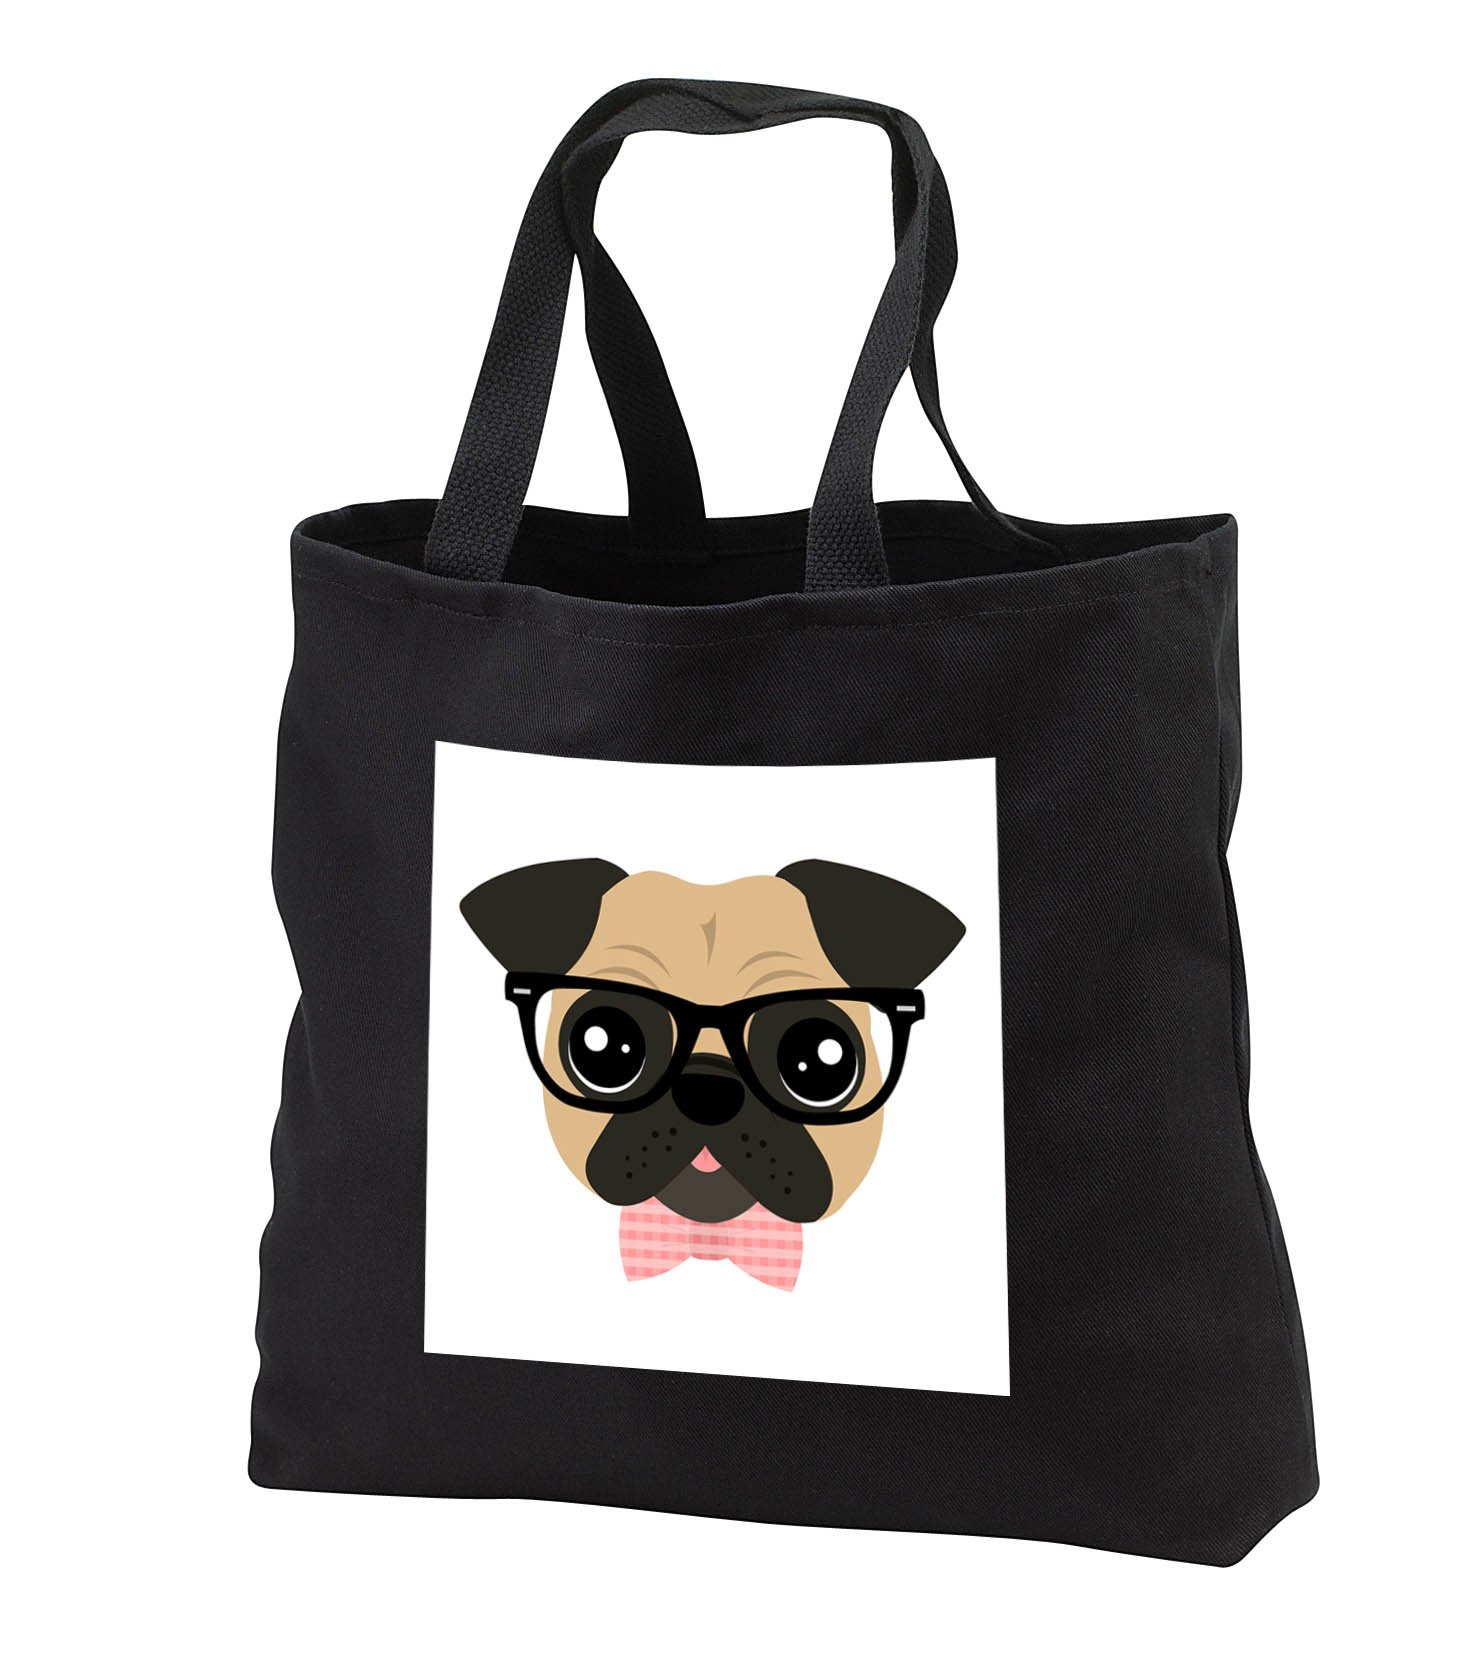 Janna Salak Designs Dogs - Nerdy Pug Cute Dog with Glasses and Bowtie - Tote Bags - Black Tote Bag JUMBO 20w x 15h x 5d (tb_283584_3)